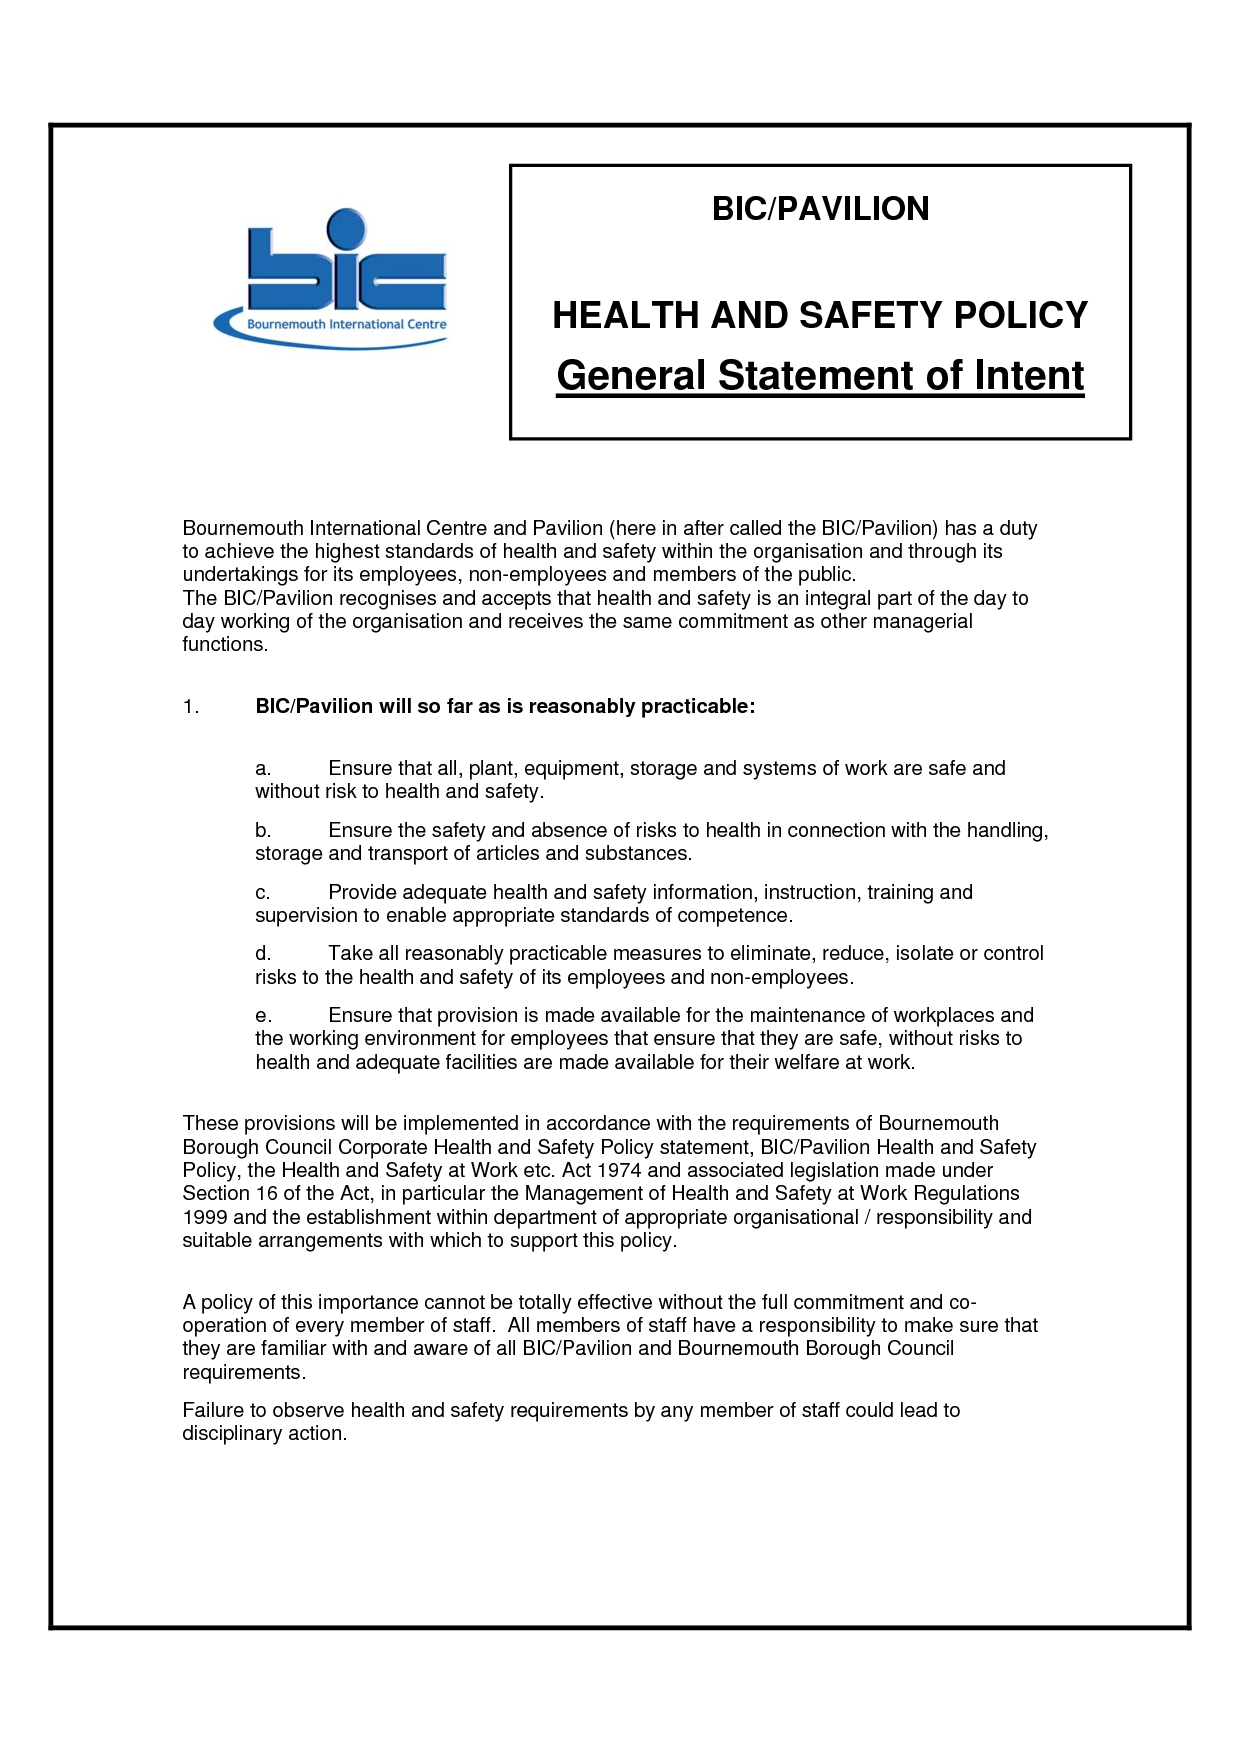 health and safety statement of intent template personal safety commitment quotes quotesgram